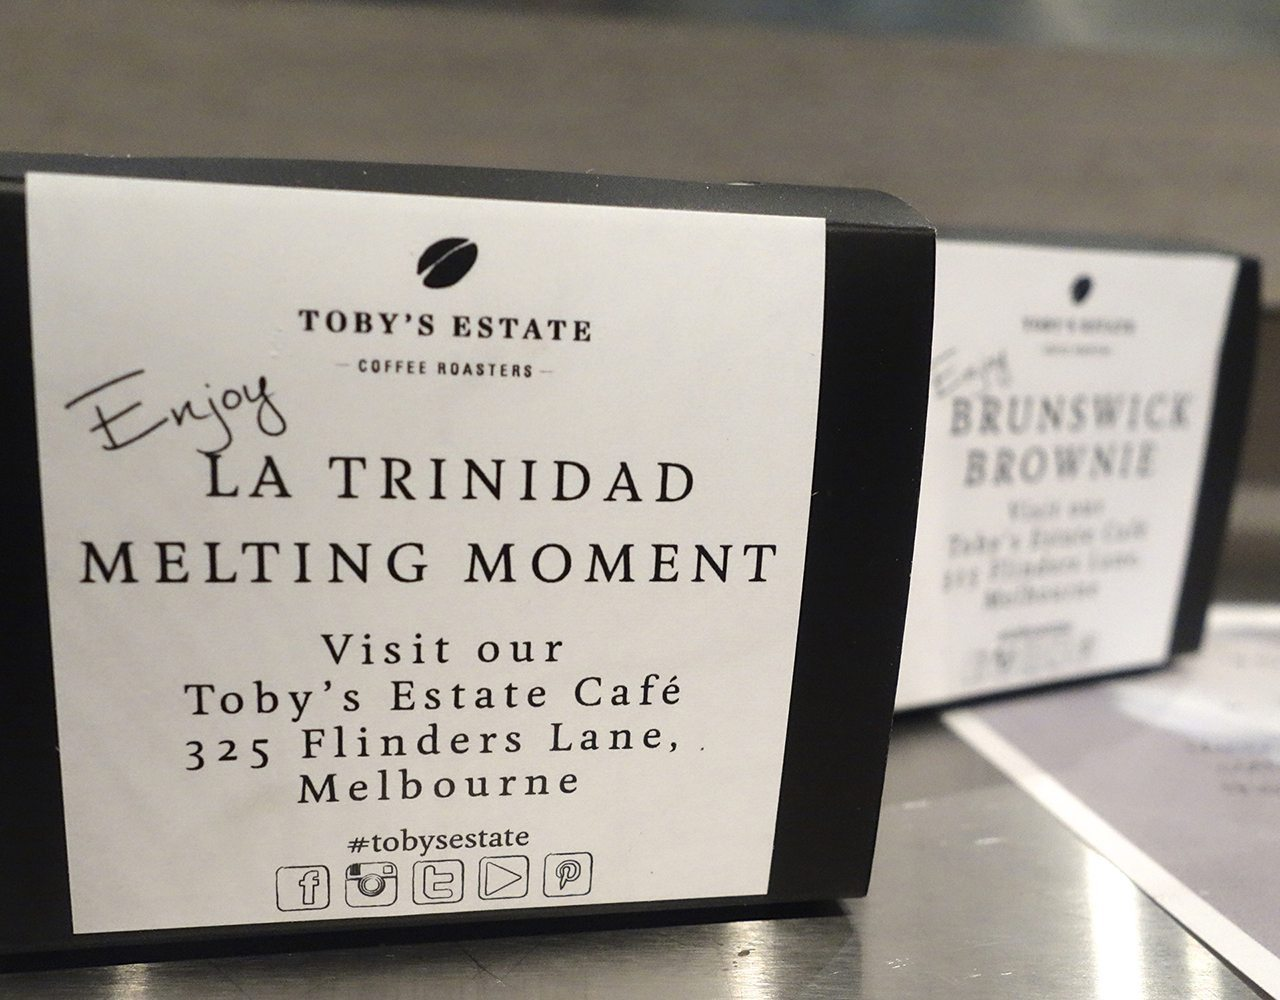 Toby Estate Coffee La Trinidad Melting Moment and Brunswick Brownie